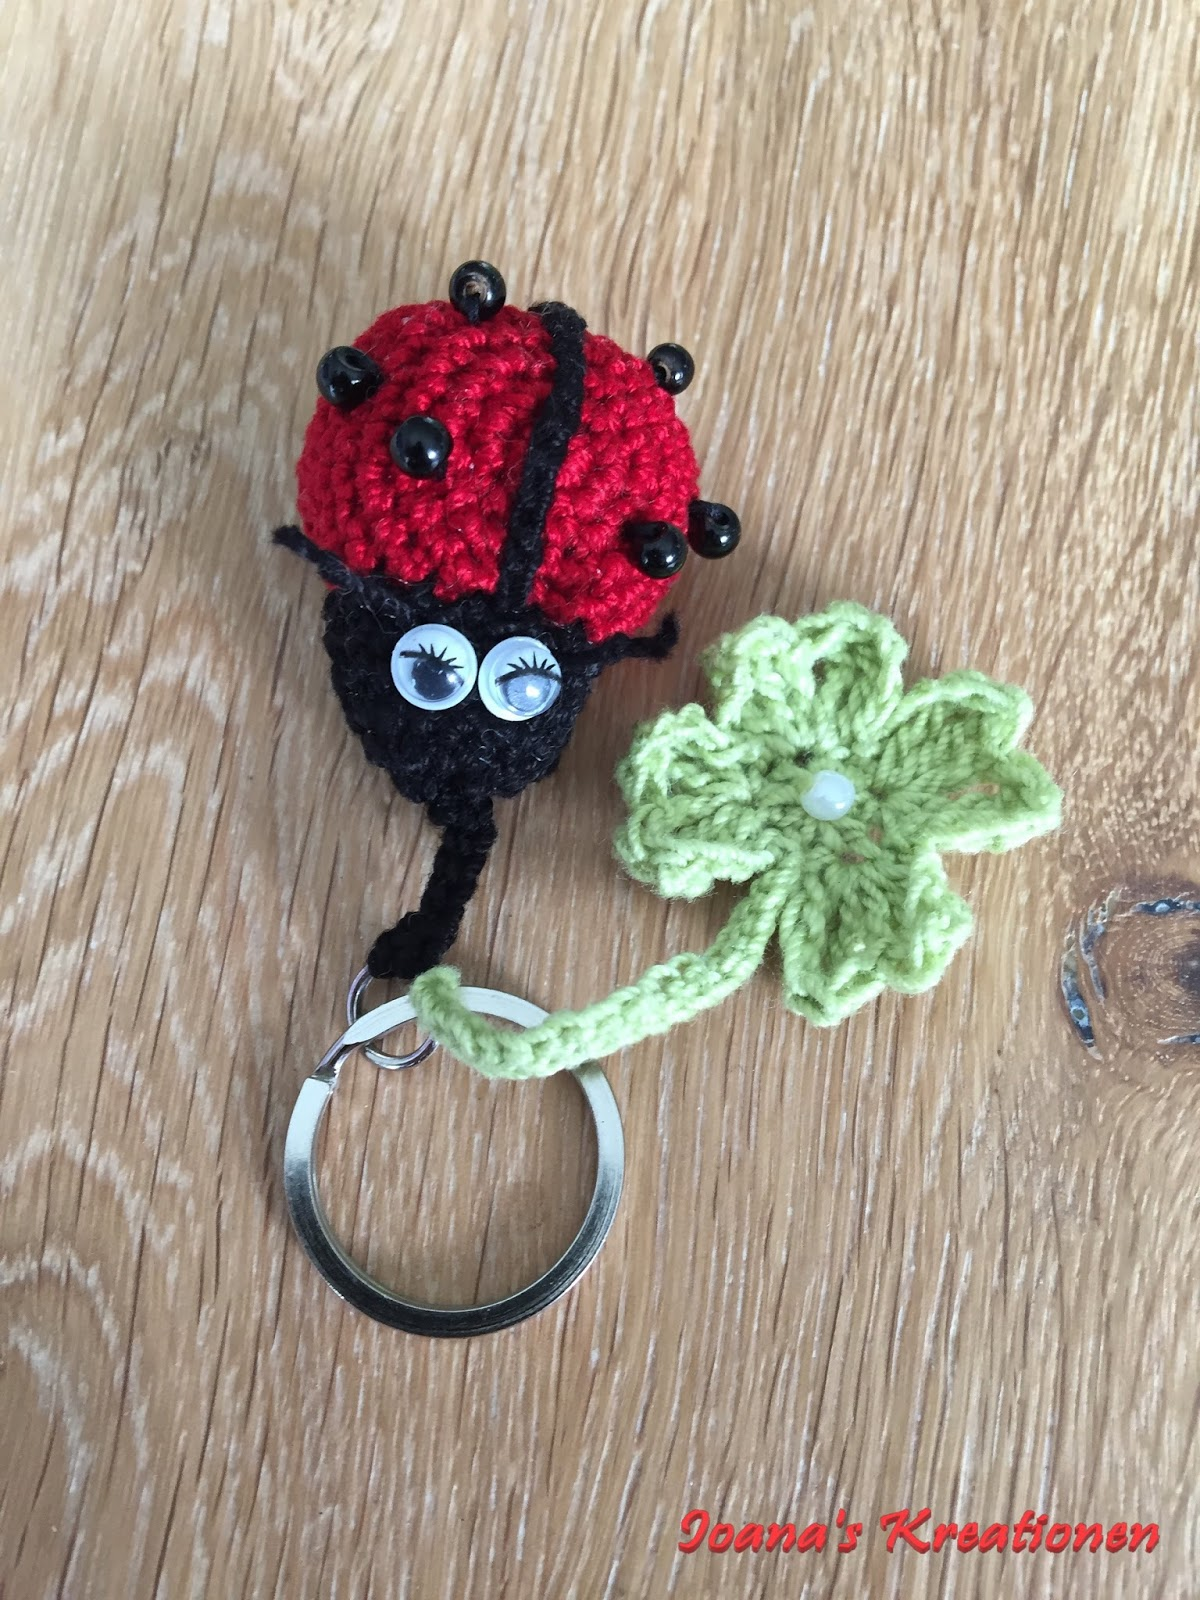 Lady Bug And Clove Key Chain Polymer Crochet Etc Handmade